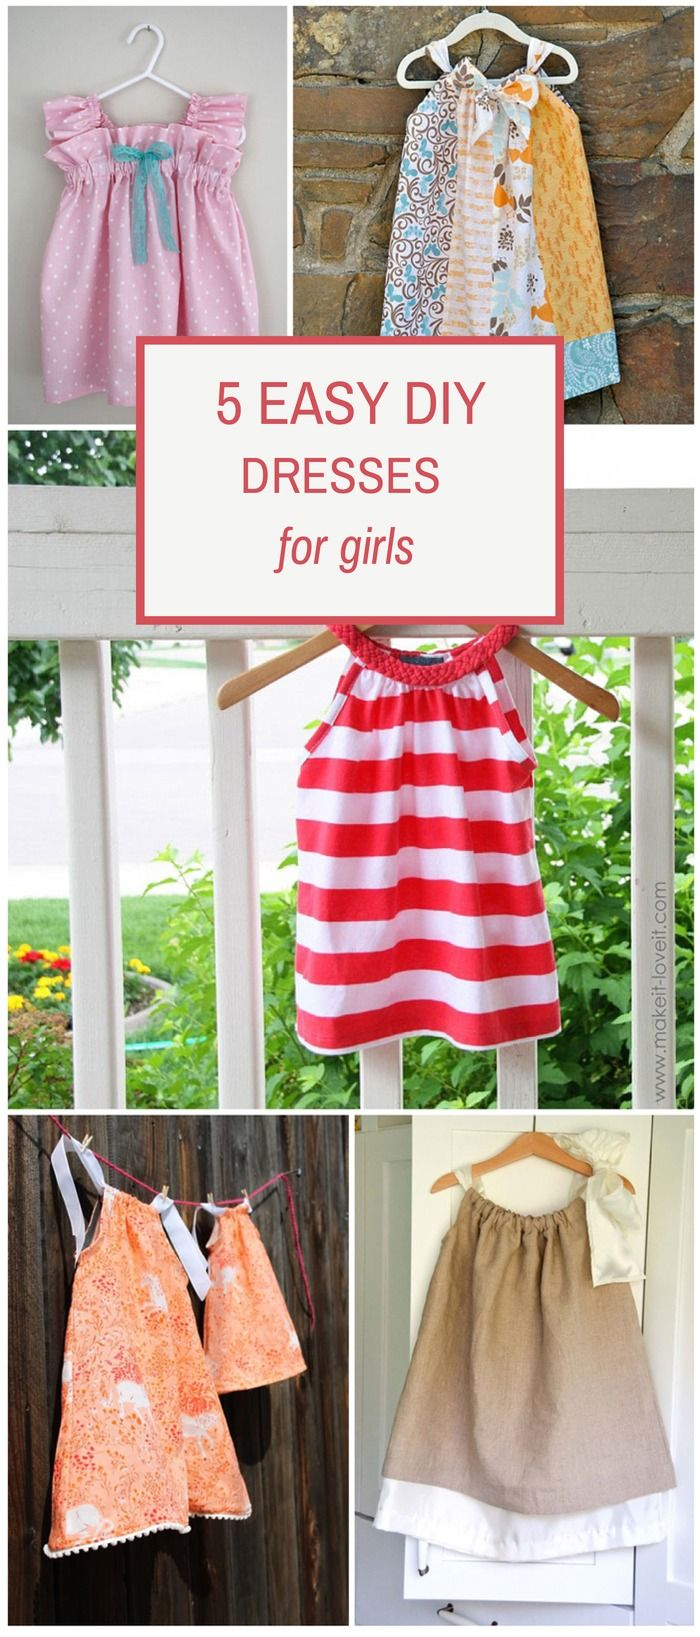 5 Easy Ways To Make A Girls Dress Best Diy Projects Pinterest Mom N Bab Pink Flower Size 4t Cute And Simple For Little